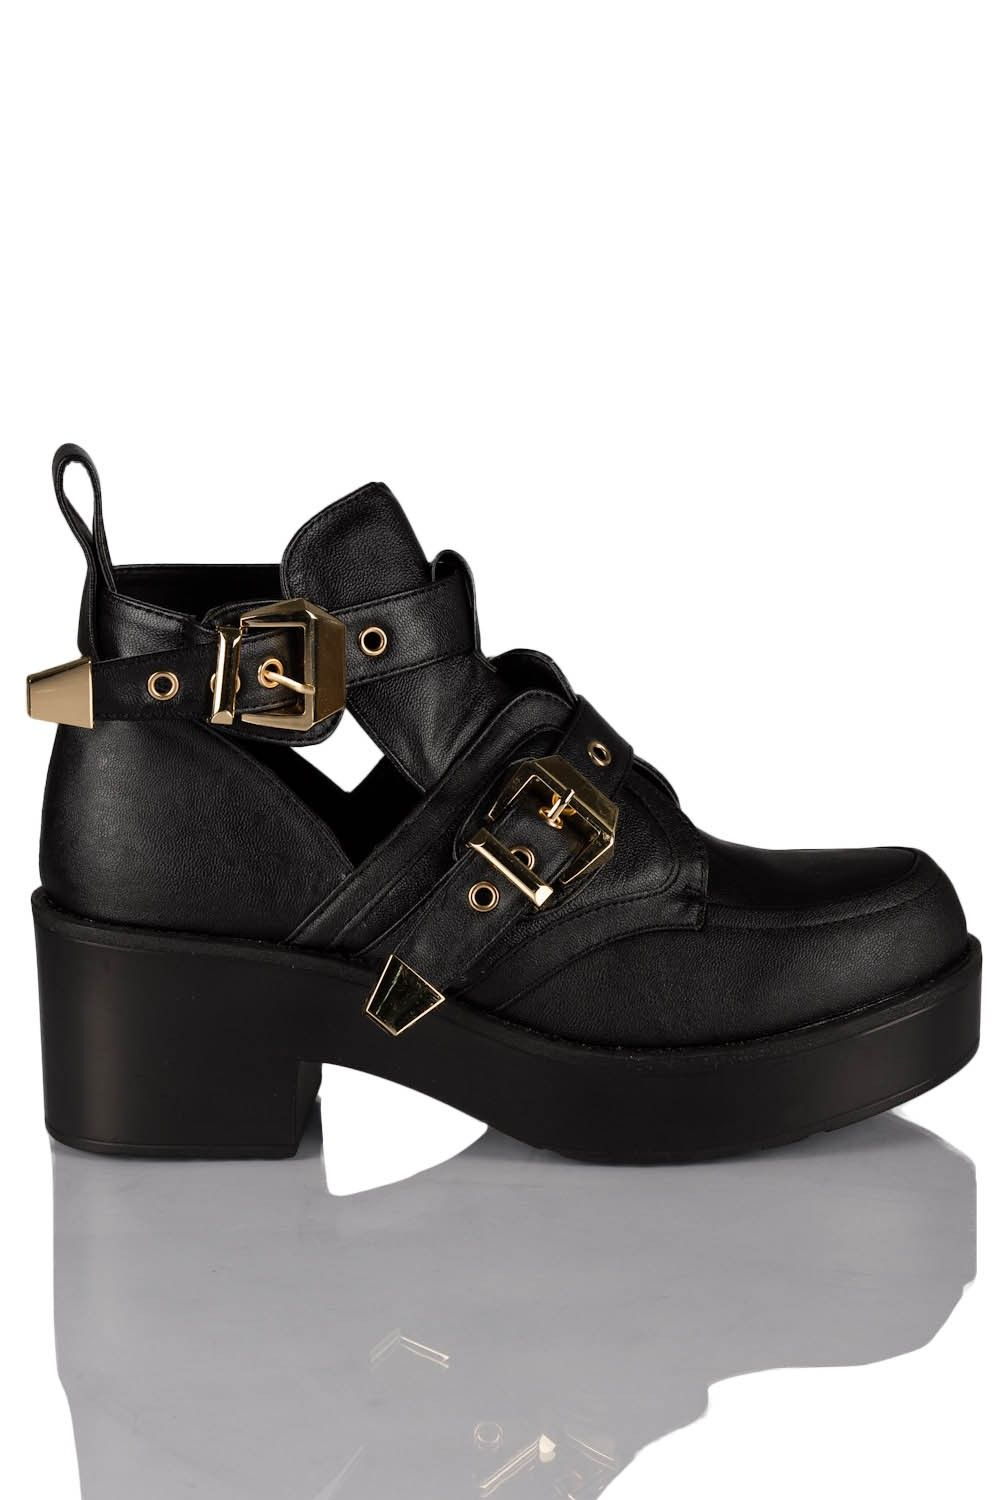 Faux Leather.  Double Buckle Fastening.  Mid Heel Platform With Finger Loop  Light Weight Design  Approx Heel Height: 2.5 inches (7 cm)  Approx Platform Height: 1.5 inches (4 cm)